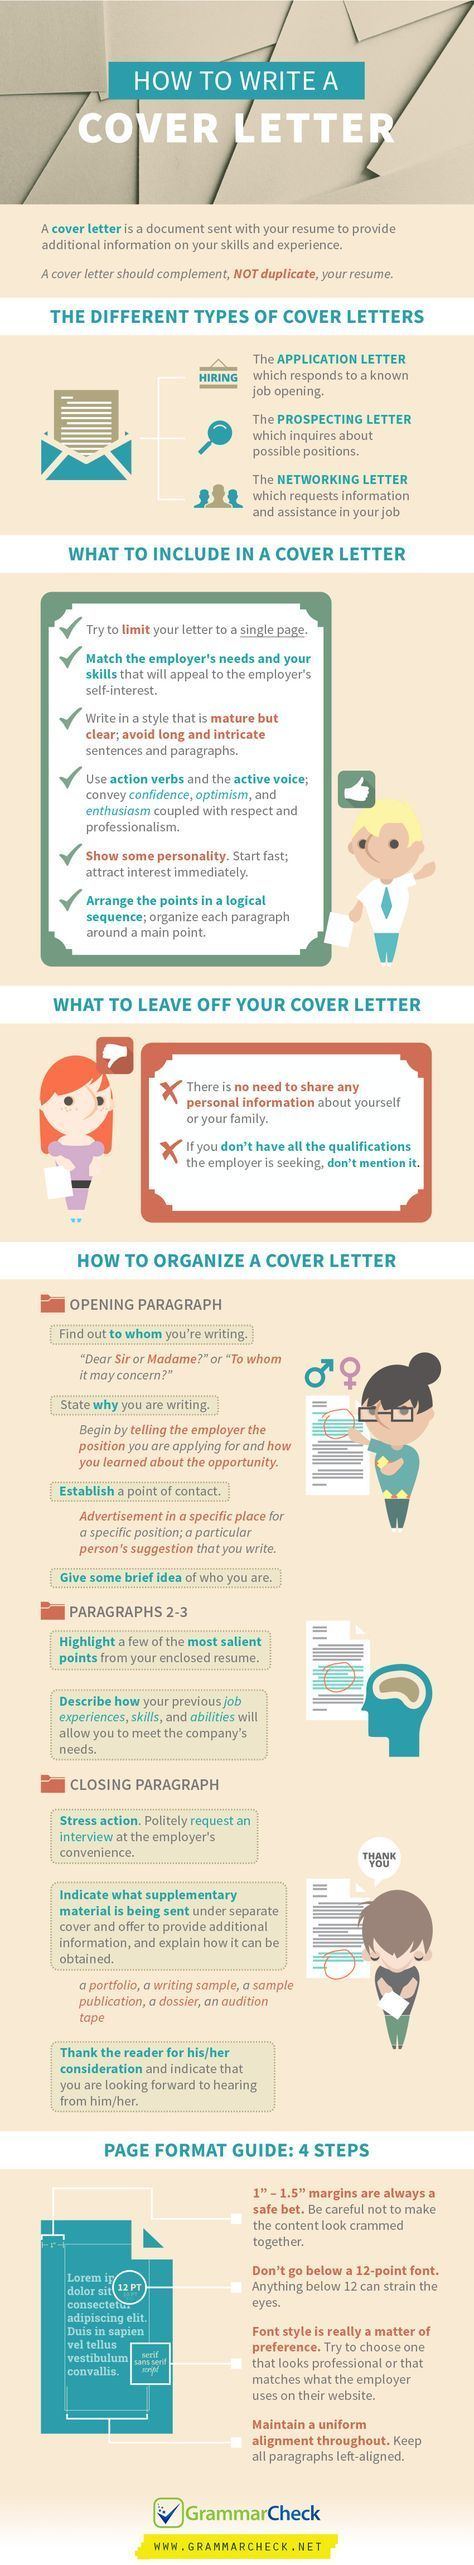 Best Cover Letter Images On   Cover Letters